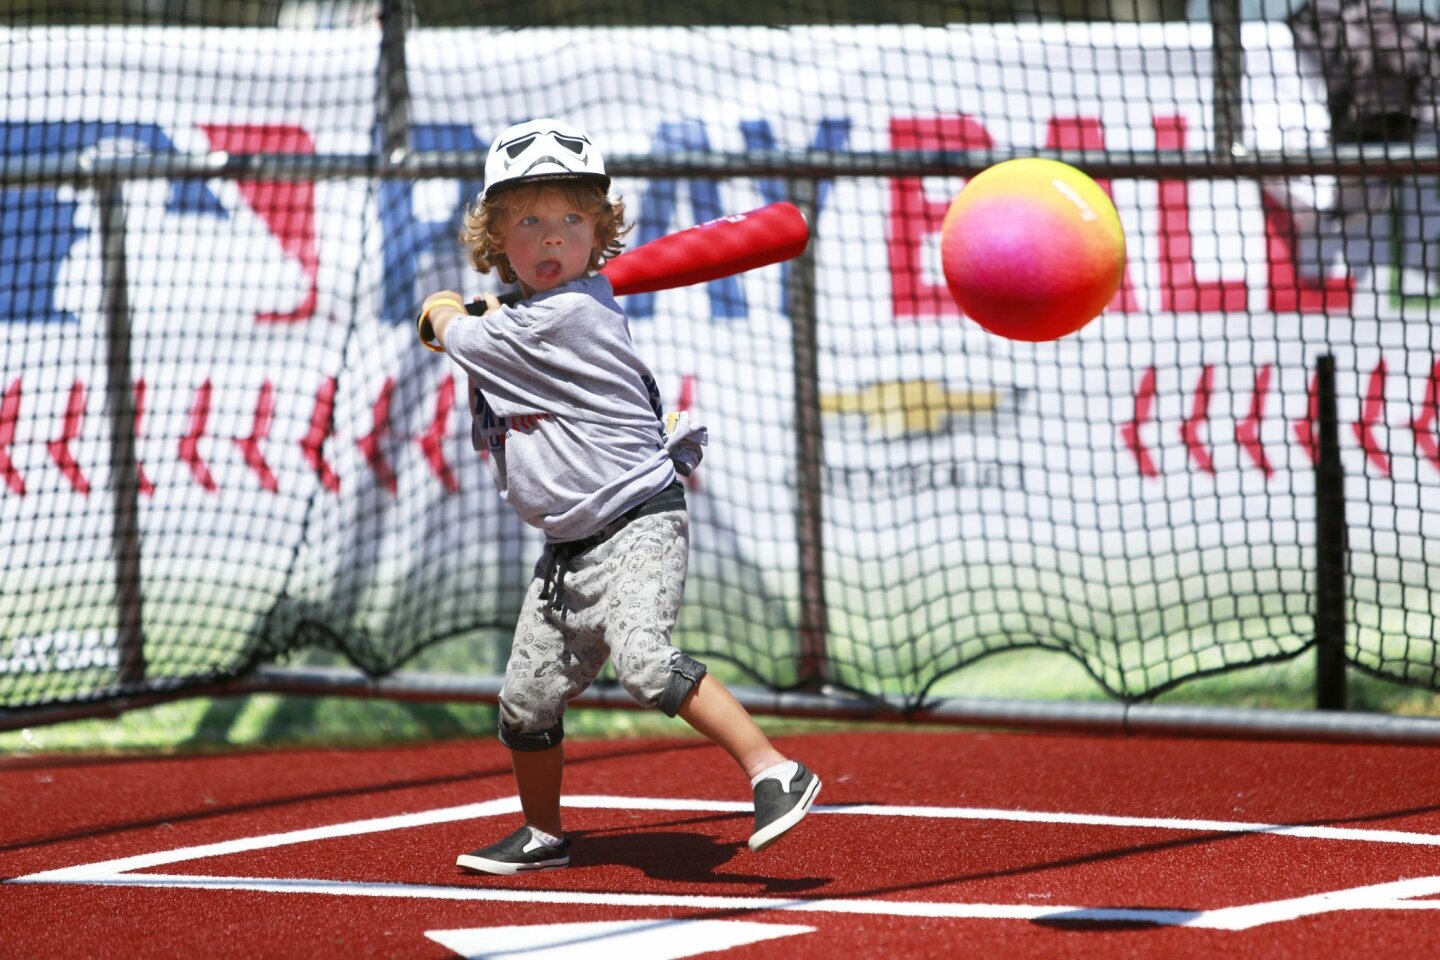 Jackson Campbell, 3, prepares to hit the ball at Play Ball Park.